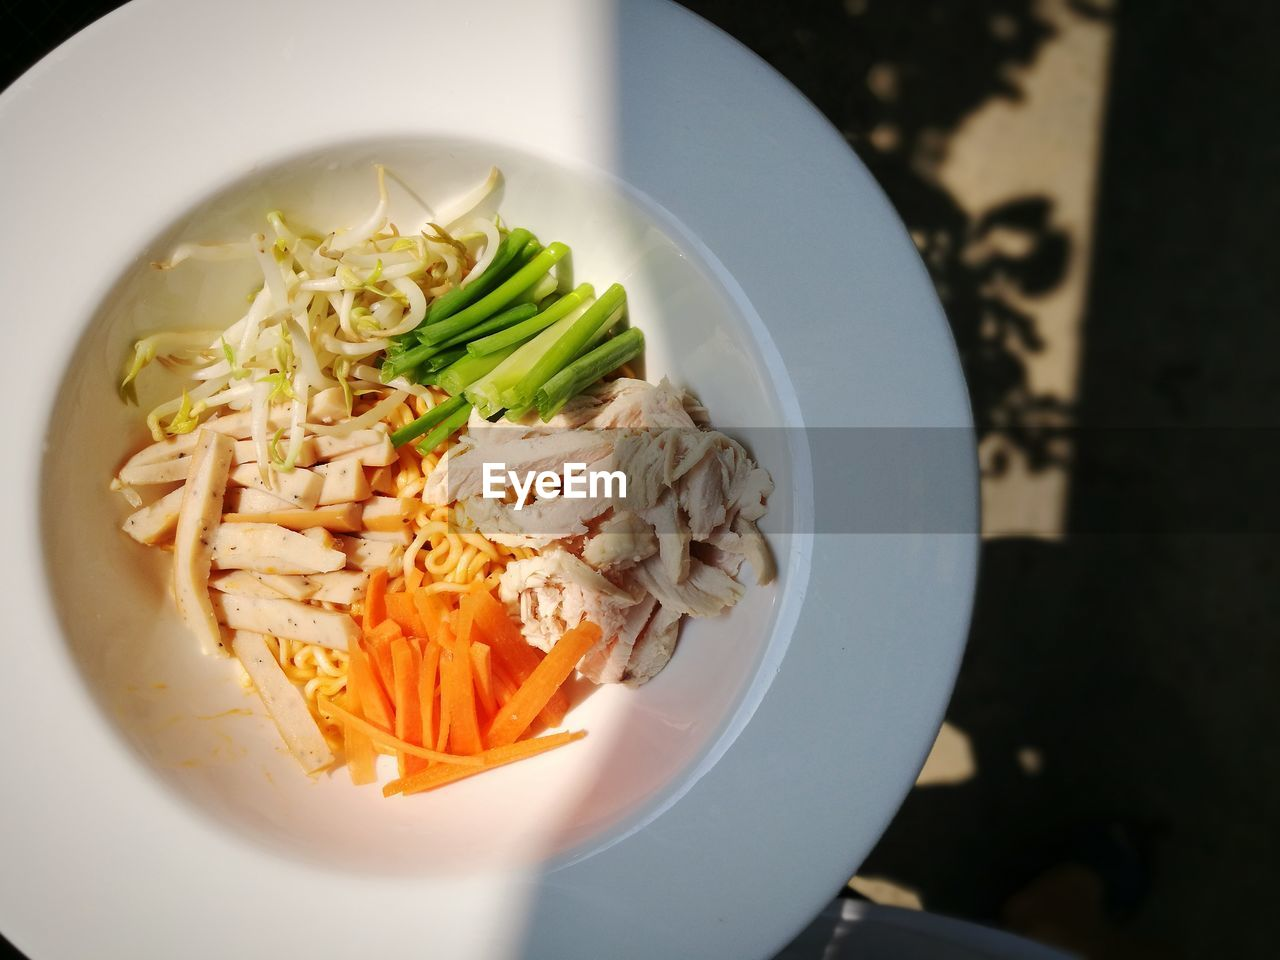 food, food and drink, healthy eating, wellbeing, freshness, ready-to-eat, indoors, pasta, vegetable, italian food, no people, close-up, still life, serving size, bowl, plate, high angle view, table, focus on foreground, meal, garnish, temptation, dinner